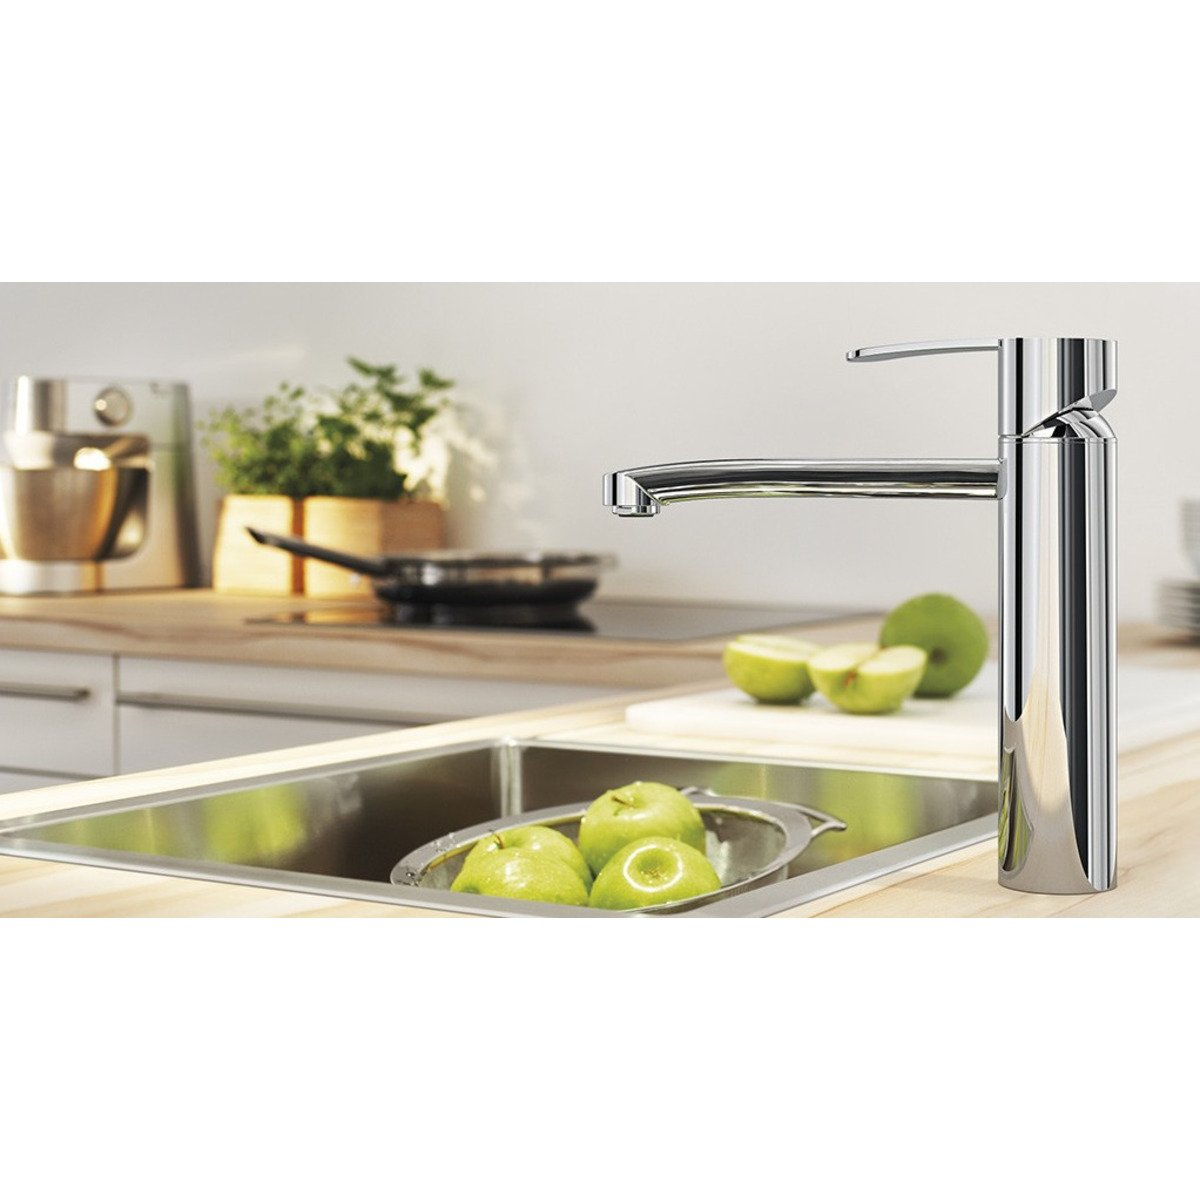 grohe wave robinet de cuisine chrome 31316000. Black Bedroom Furniture Sets. Home Design Ideas